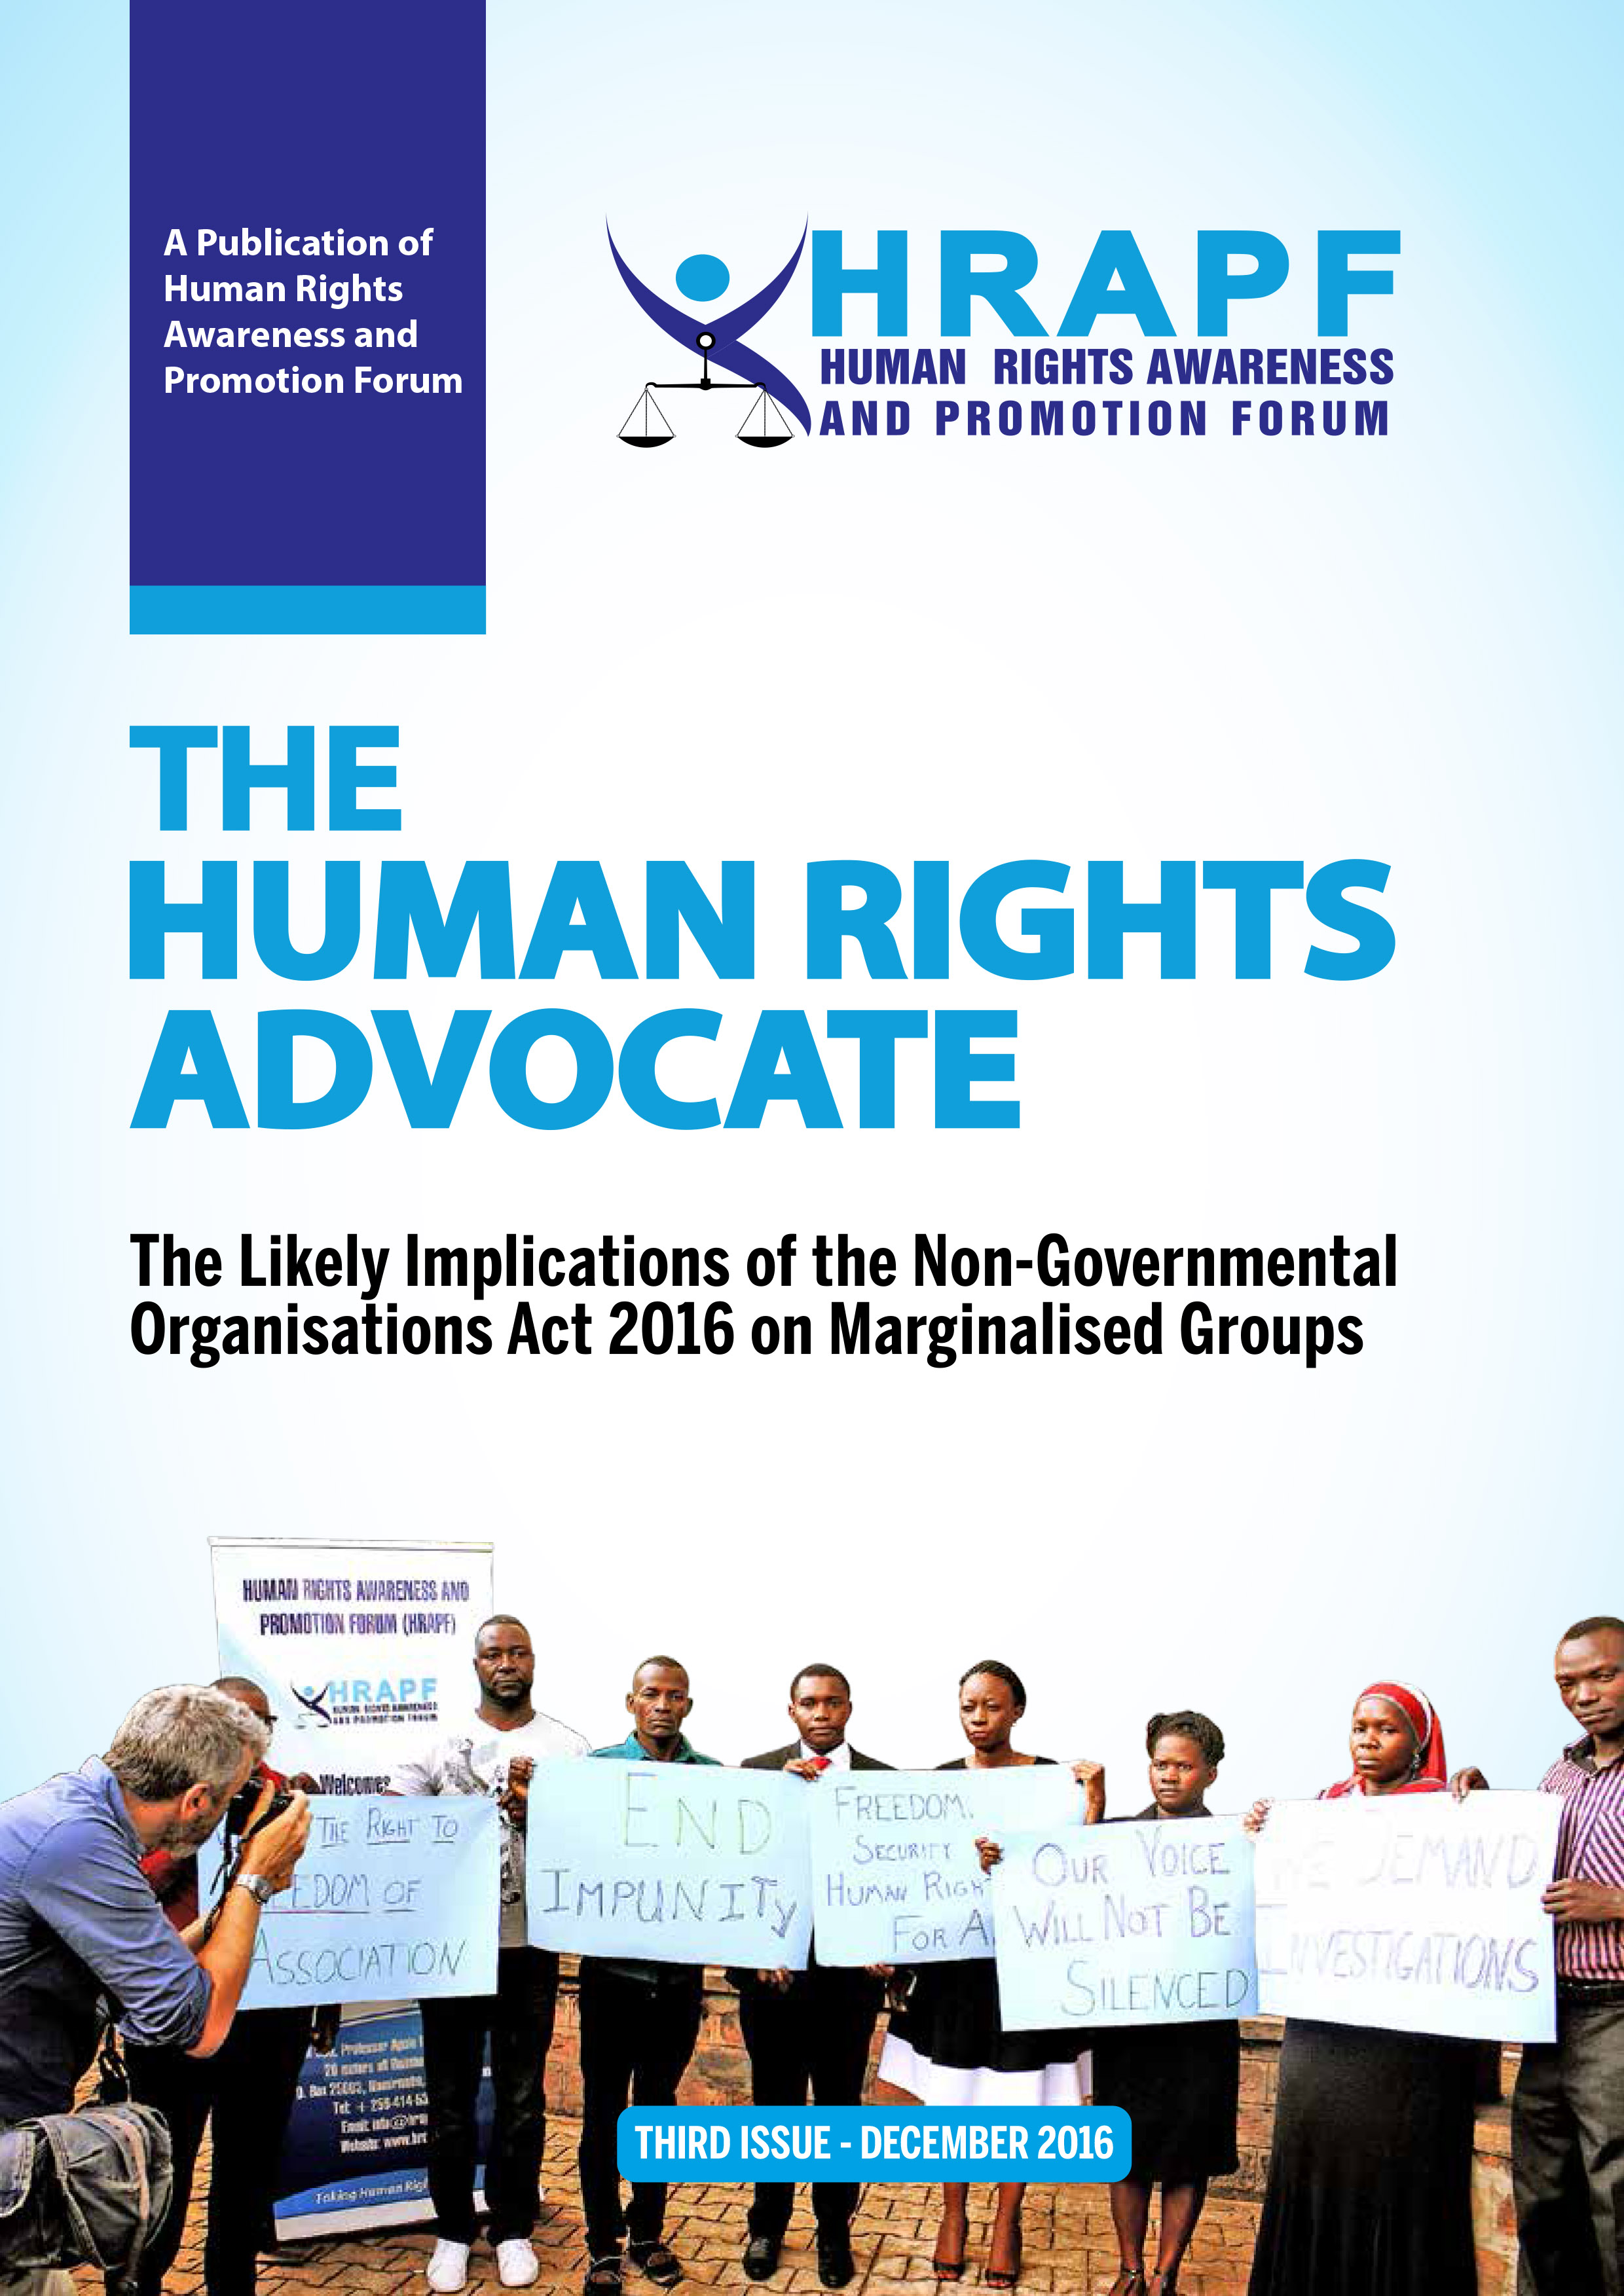 THIRD ISSUE OF THE HUMAN RIGHTS ADVOCATE